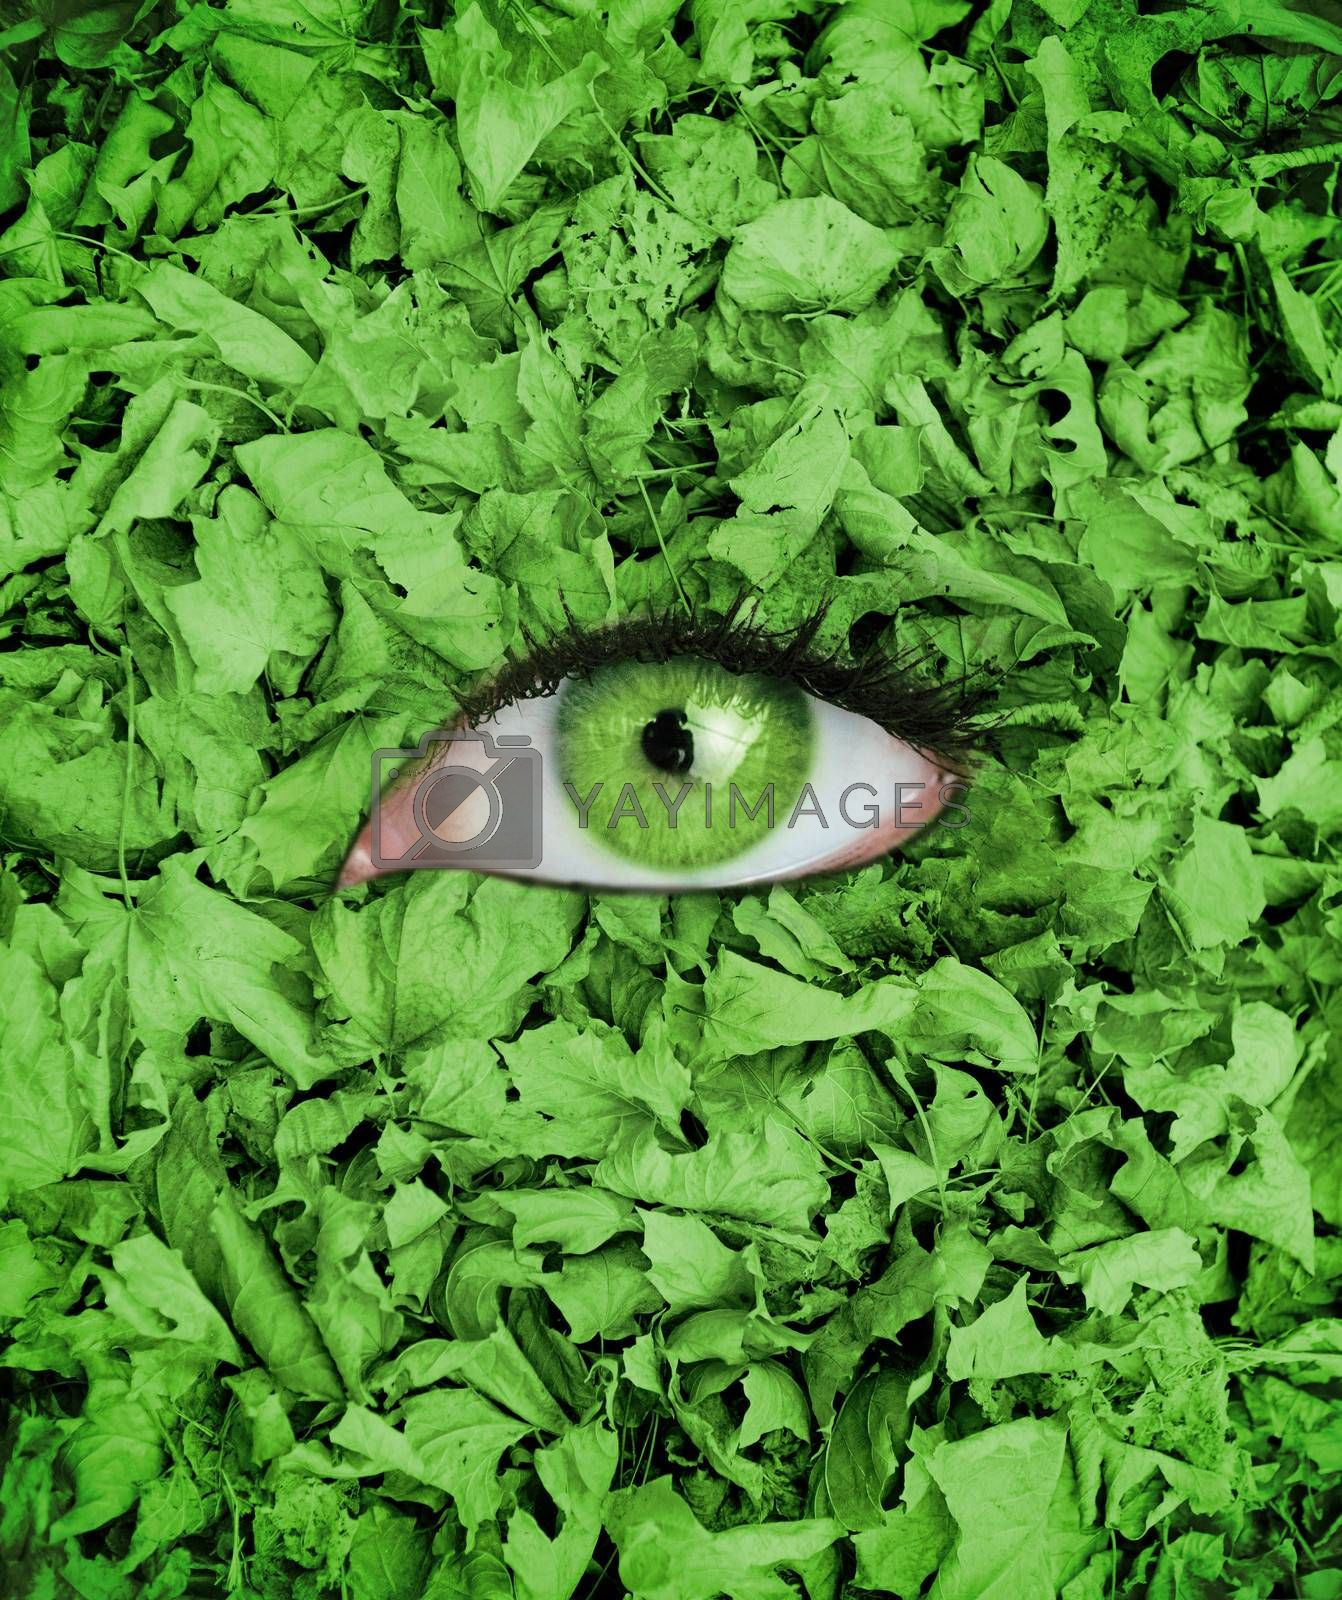 Green eye in the middle of green leaves